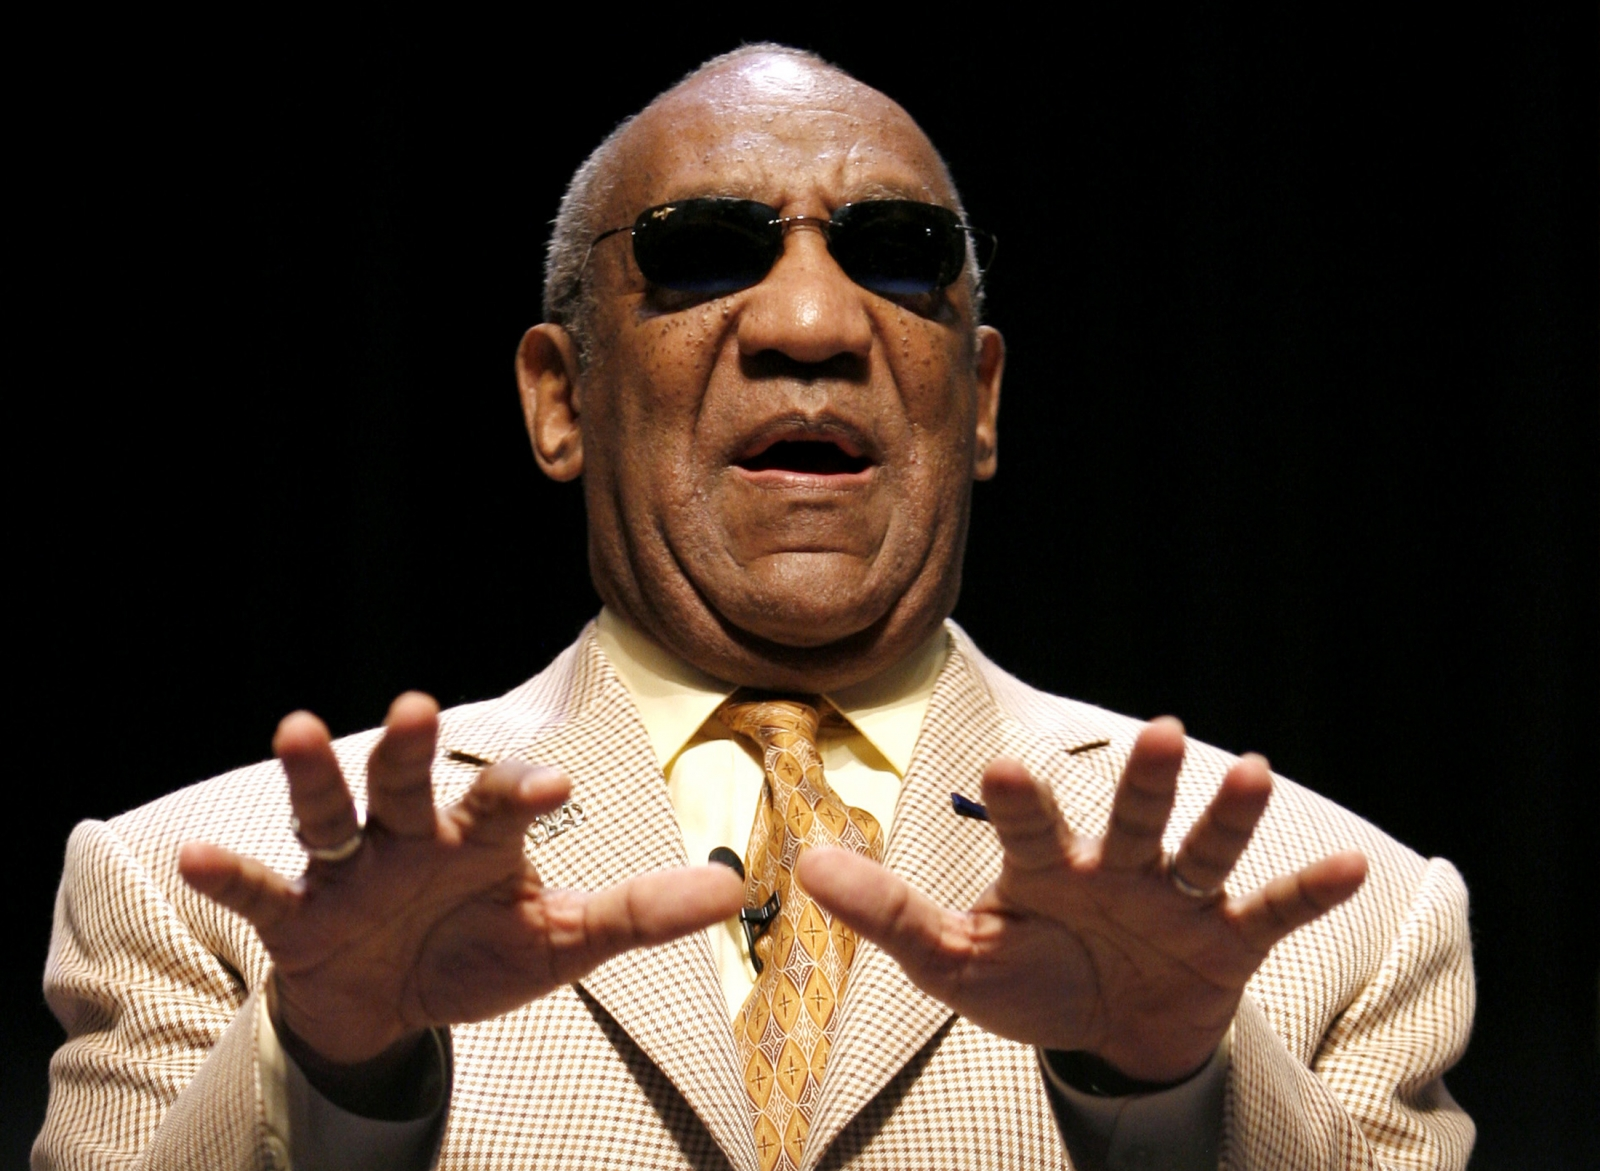 Actor, comedian and author Bill Cosby is at the centre of sexual abuse allegations